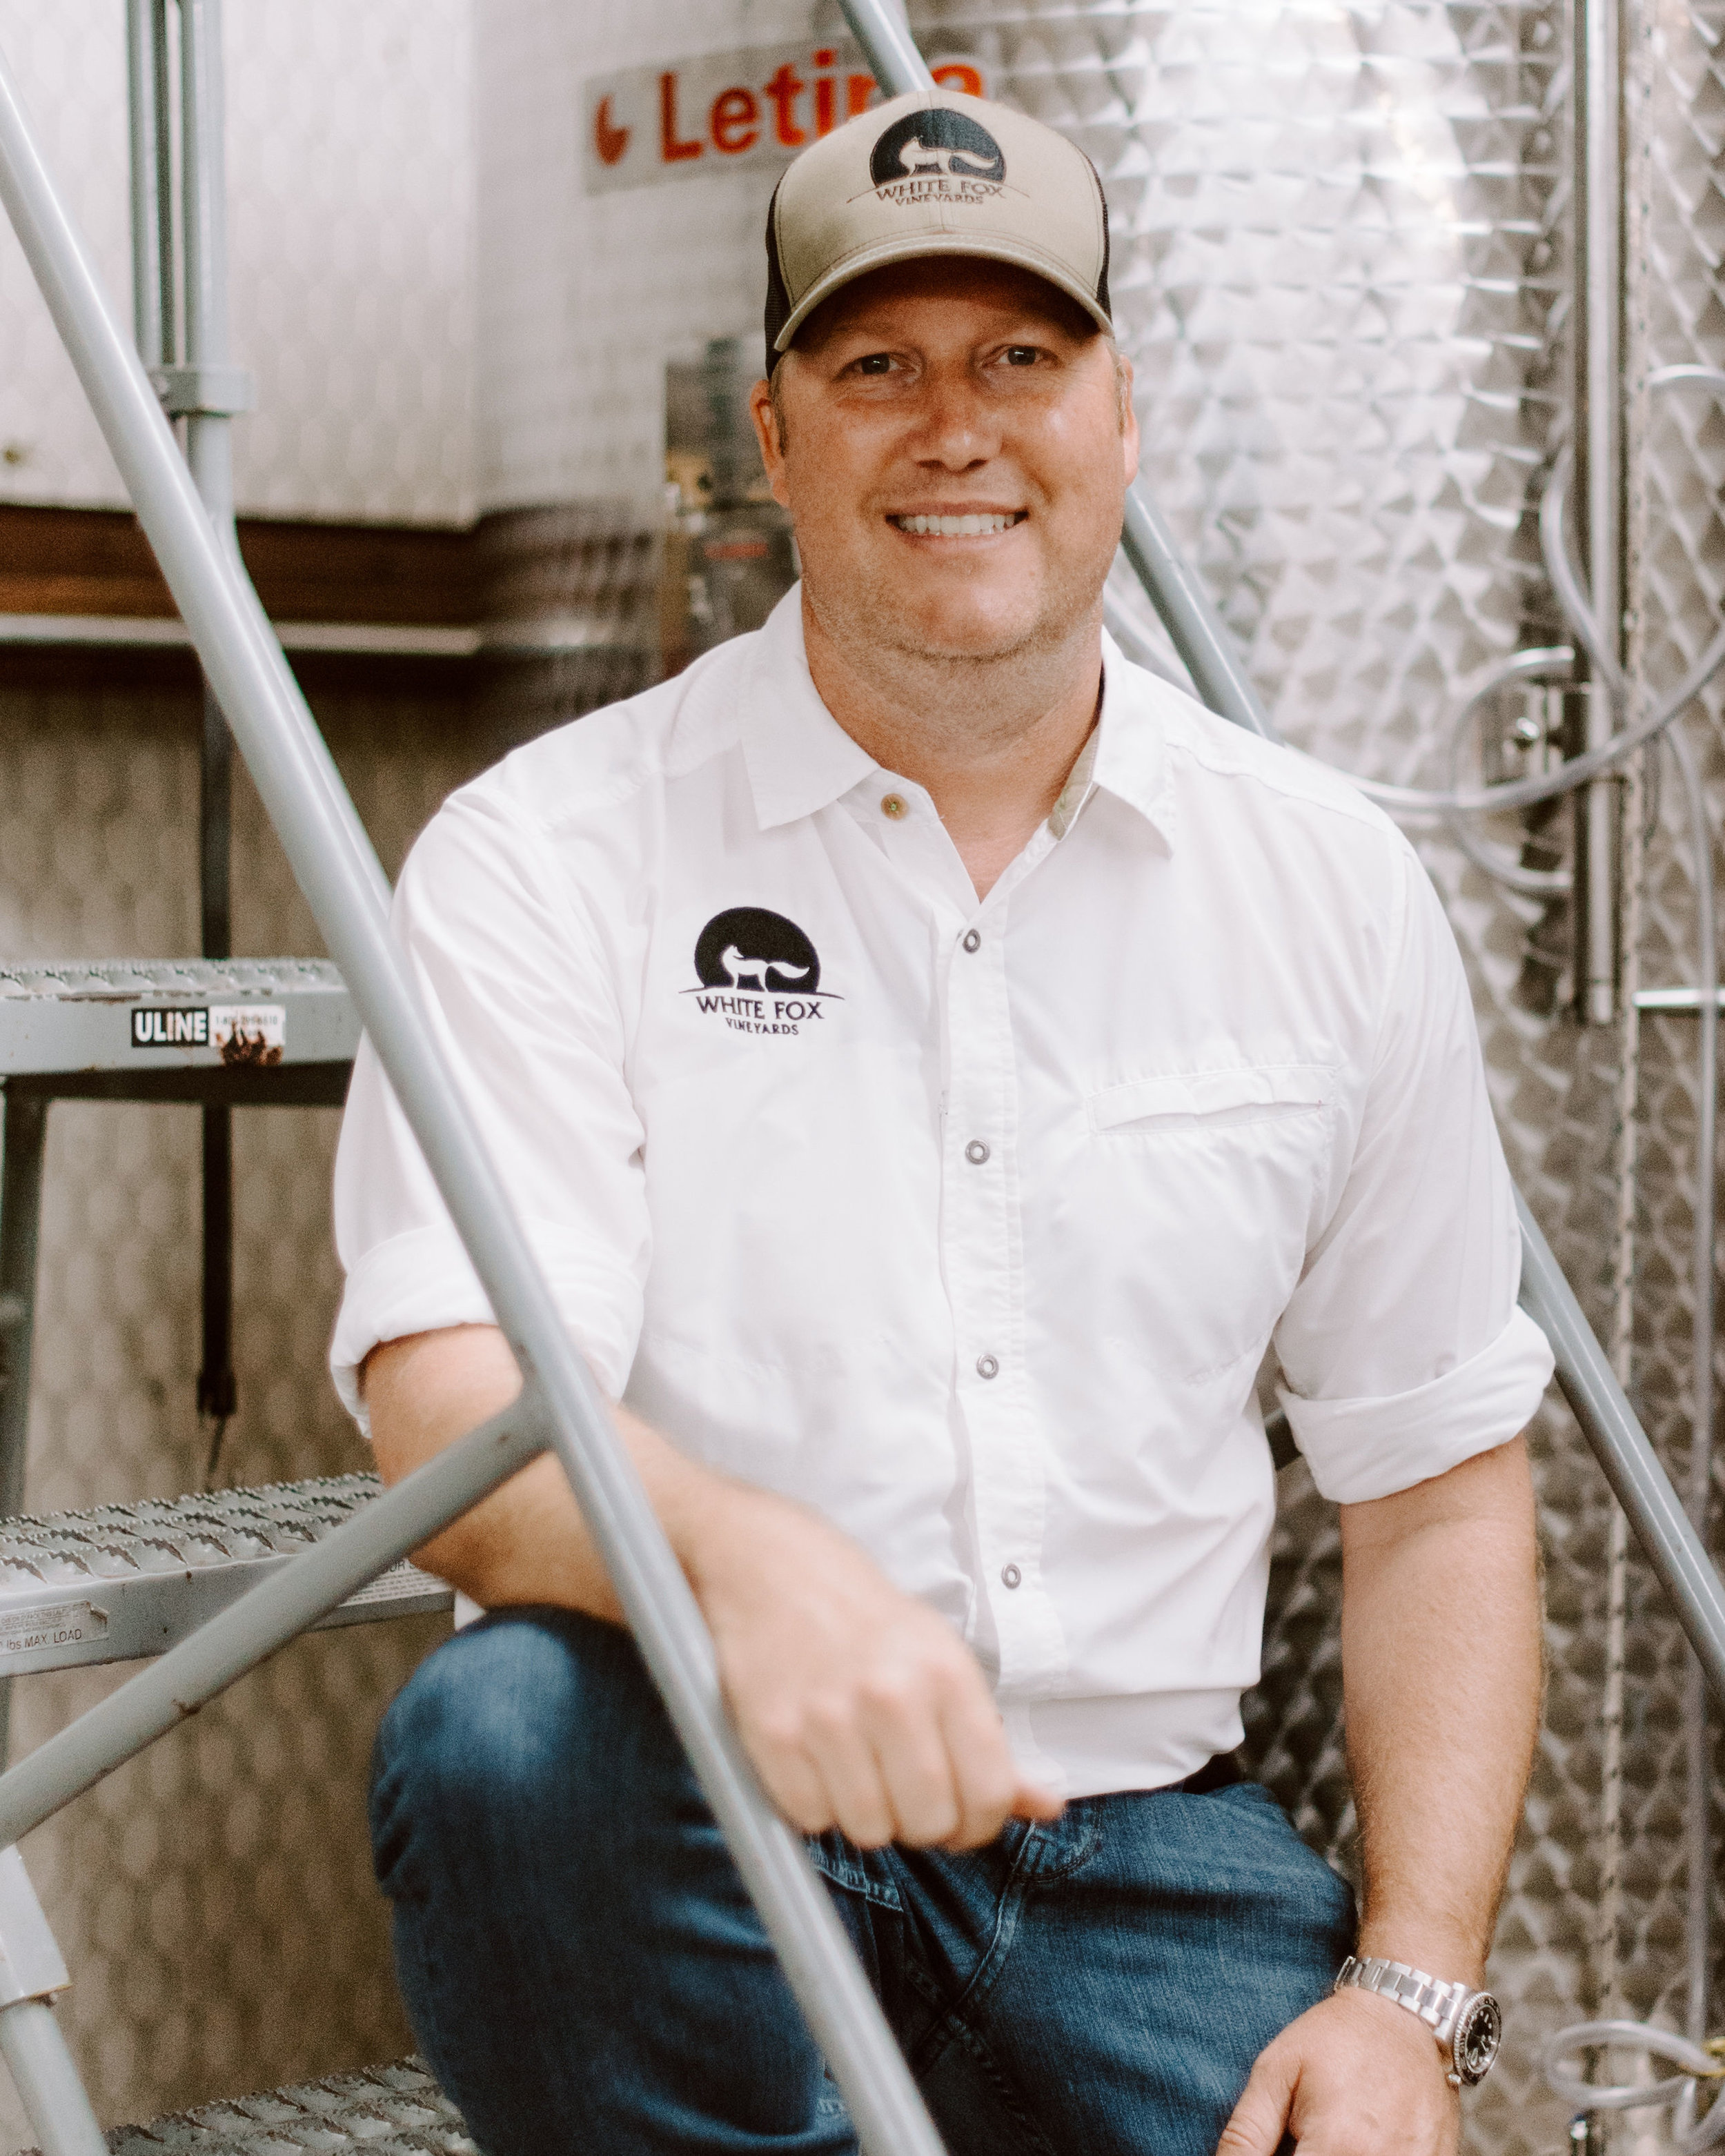 Bryan Fears || Co-Founder - Bryan is an attorney by trade with a passion for wine. He brought the entrepreneurial spirit to White Fox after starting the vineyard with his brother Daniel. When he's not working for his law firm or the vineyard, Bryan volunteers as the development chair for Dallas Summer Musicals and enjoys spending time in the outdoors with his wife and two sons.